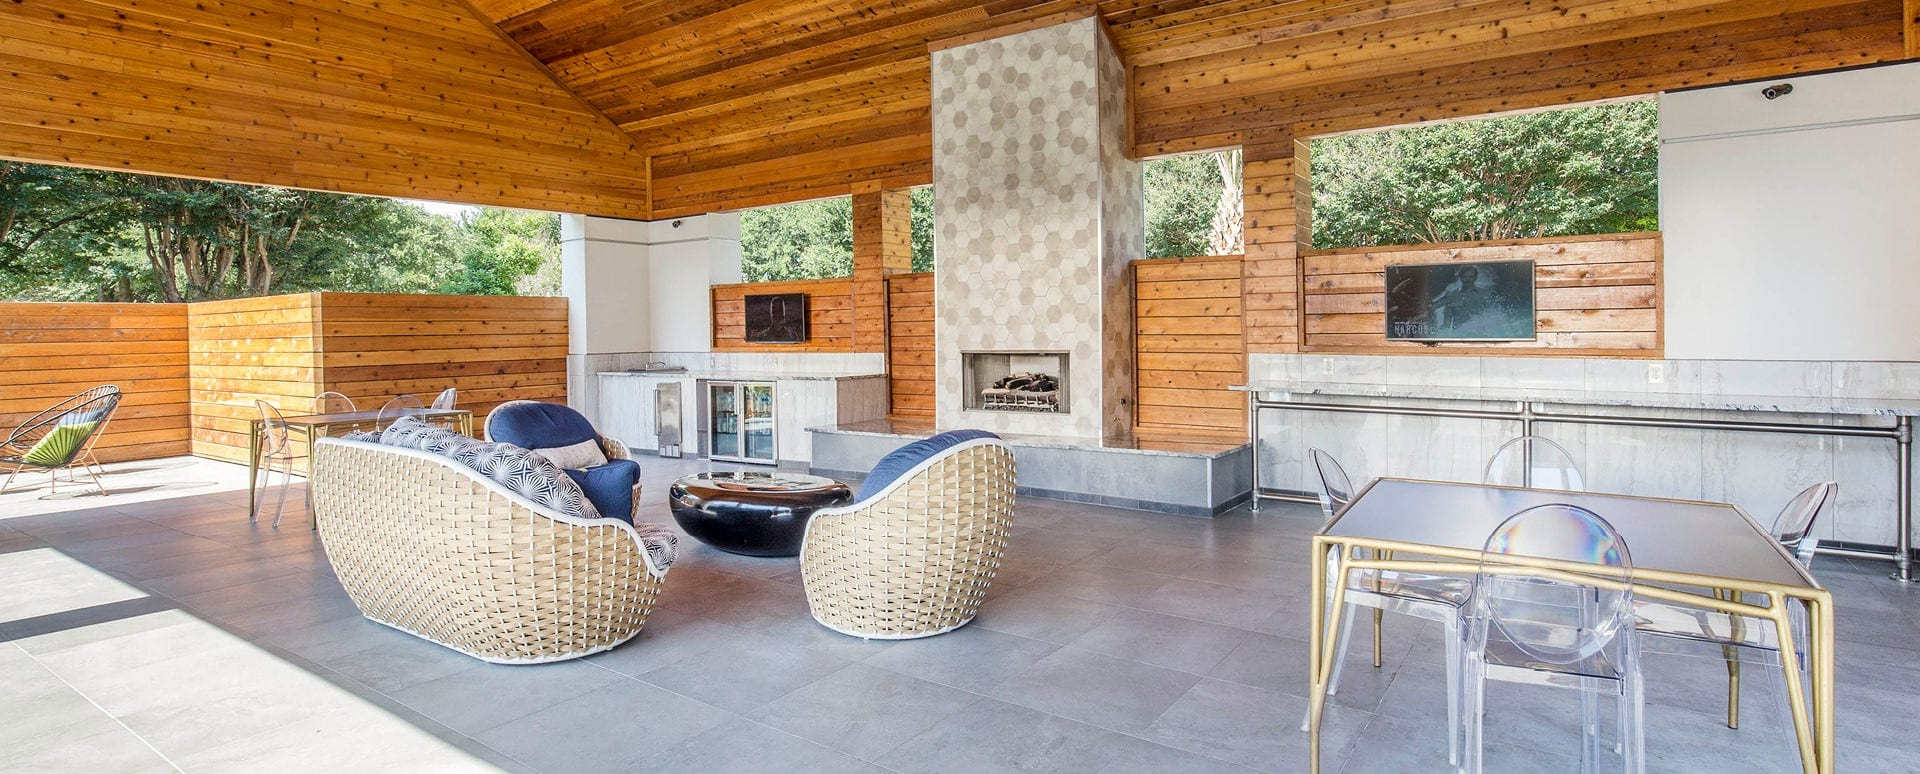 Outdoor Resident Lounge with Fireplace